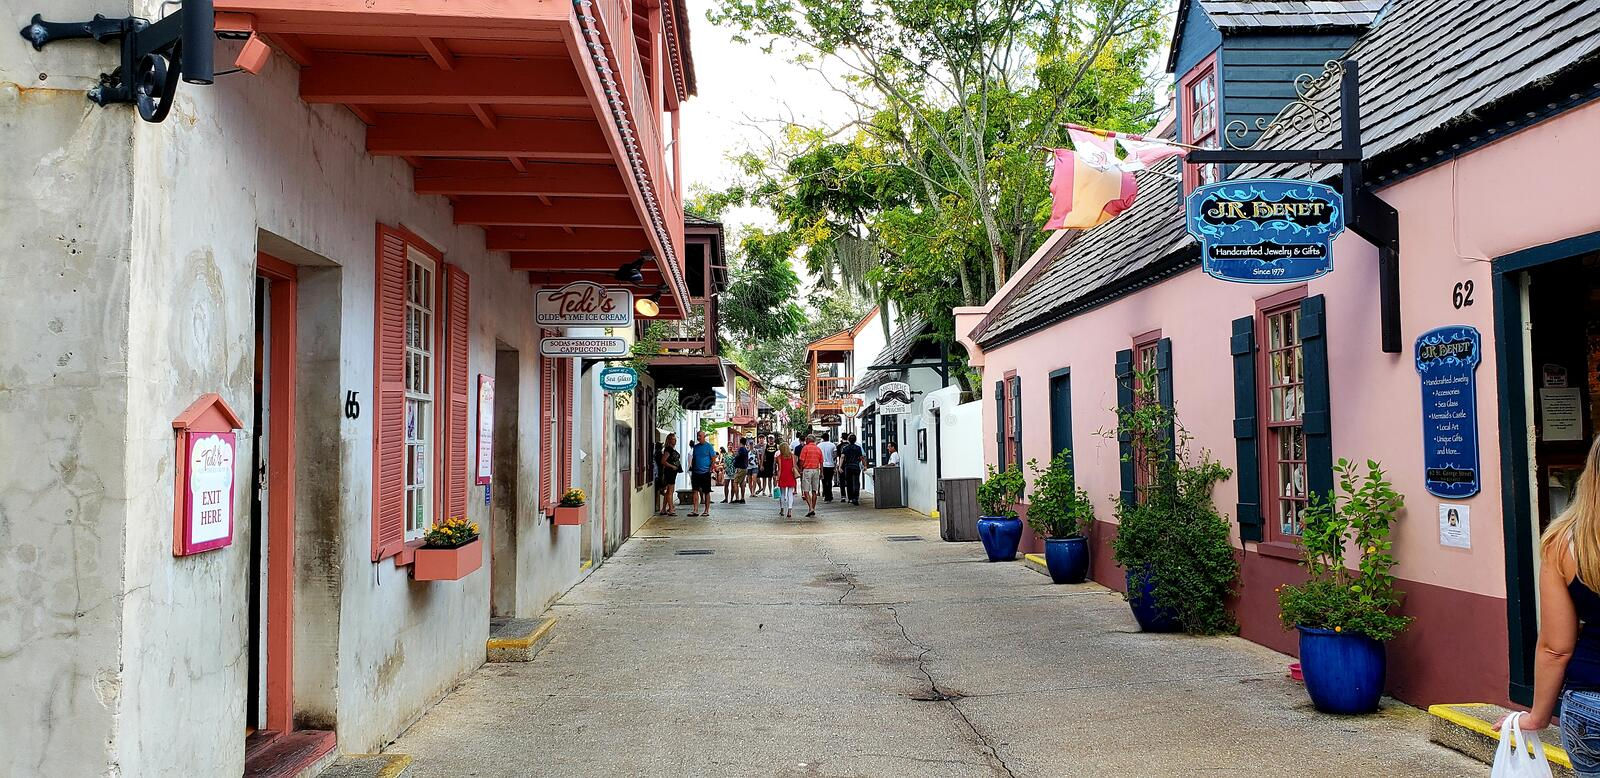 Historic Downtown St. Augustine. Shops, restaurants, and lodging along the quaint streets of St. Augustine stock image